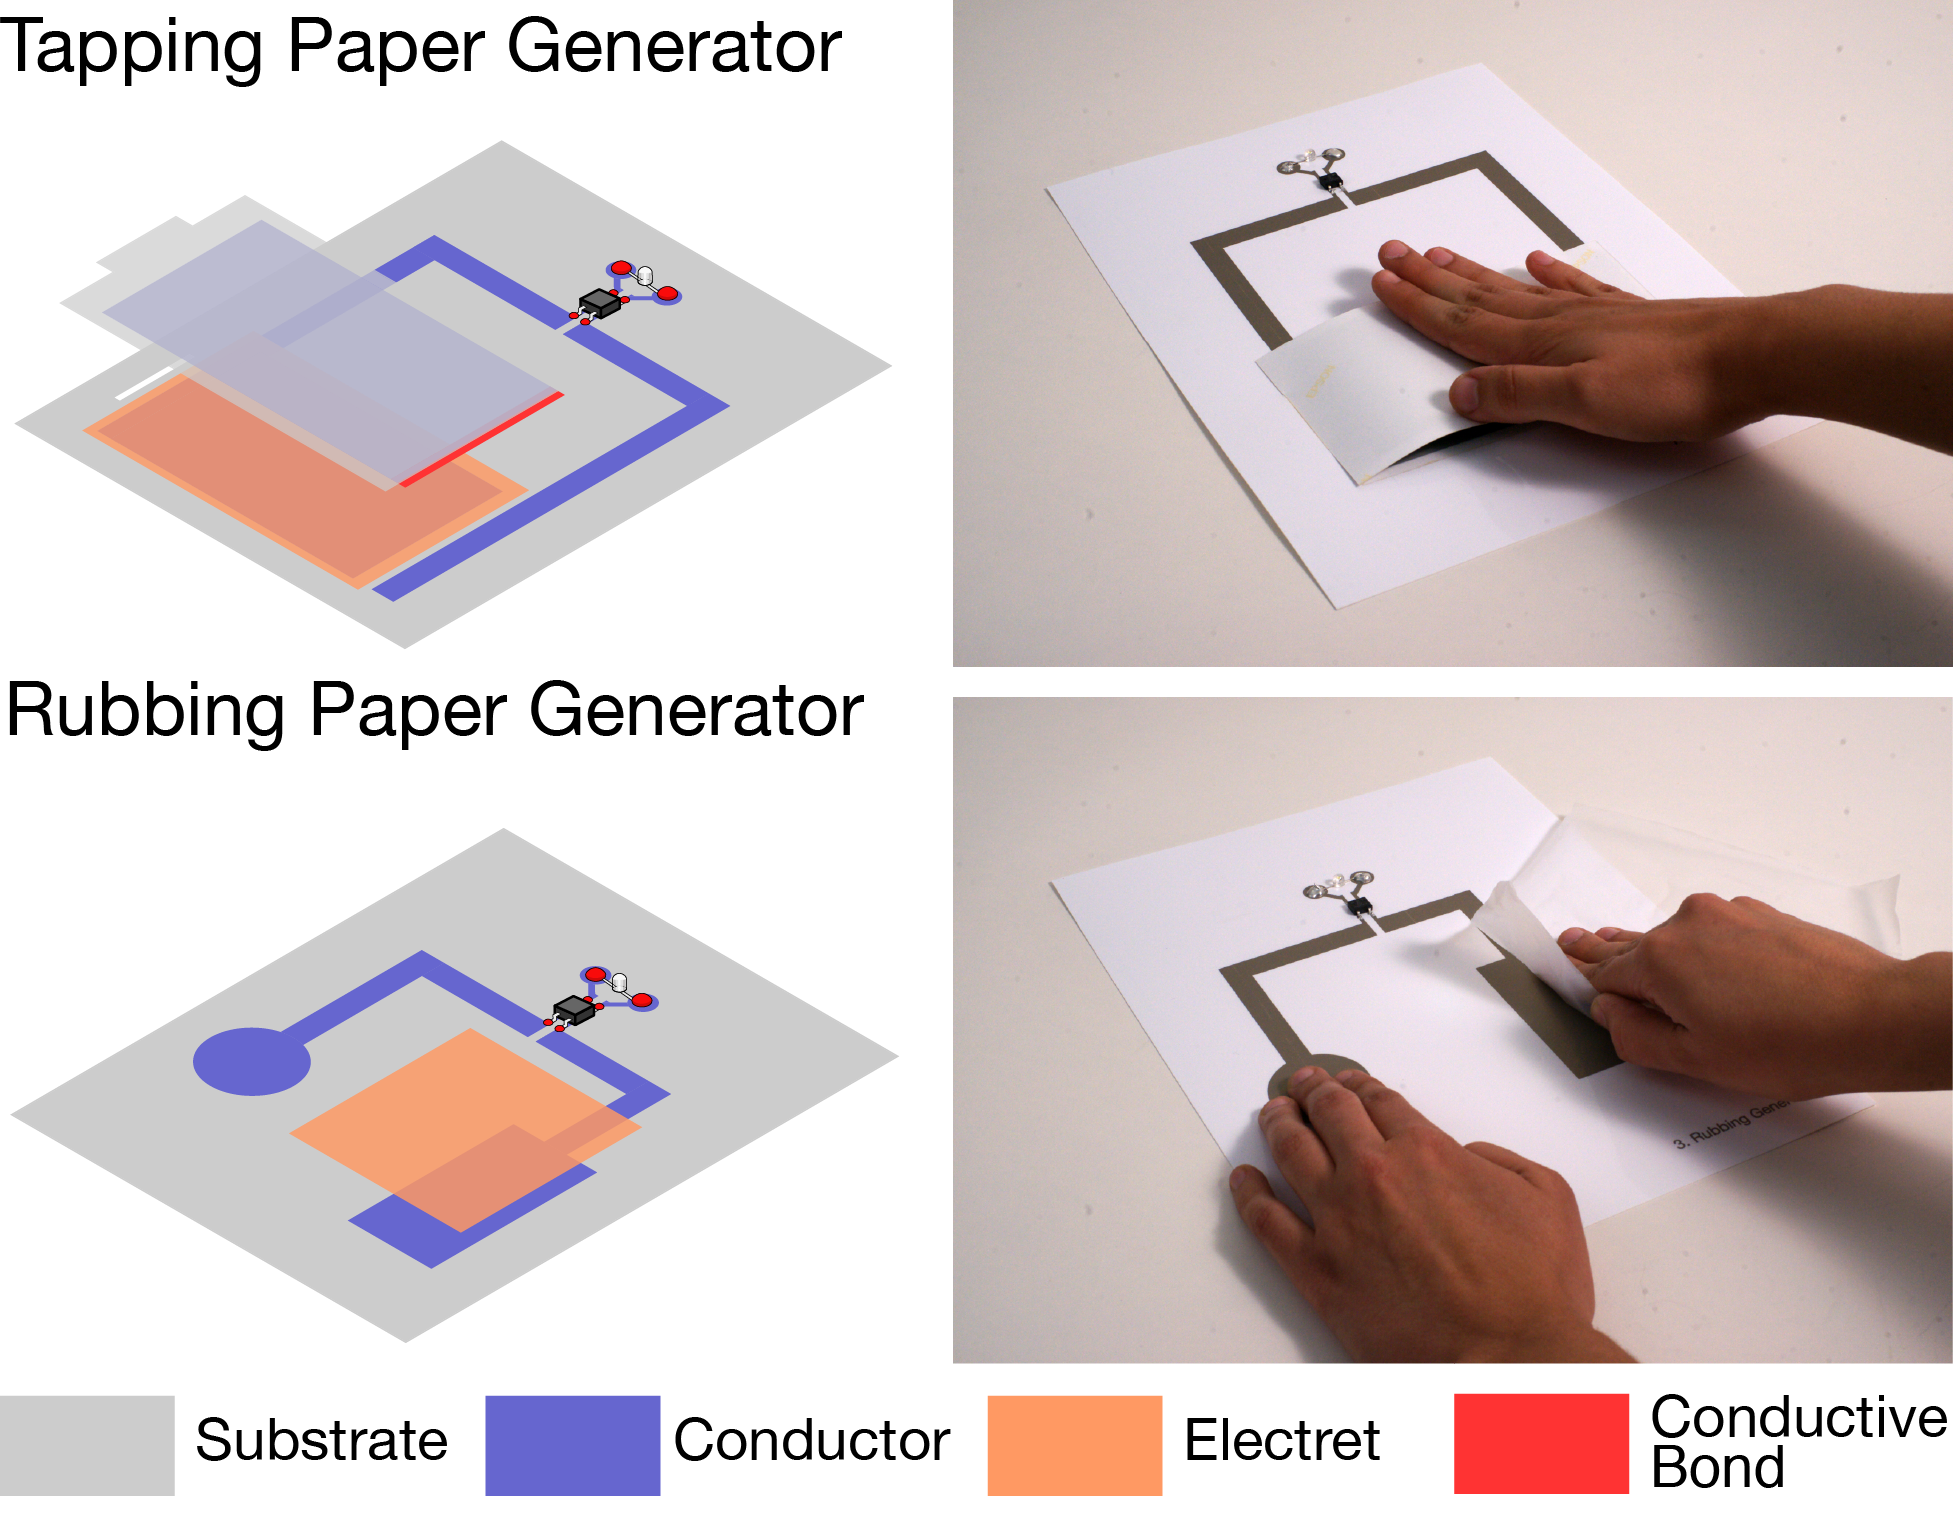 disney research acirc paper generators harvesting energy from tapping and rubbing paper generators